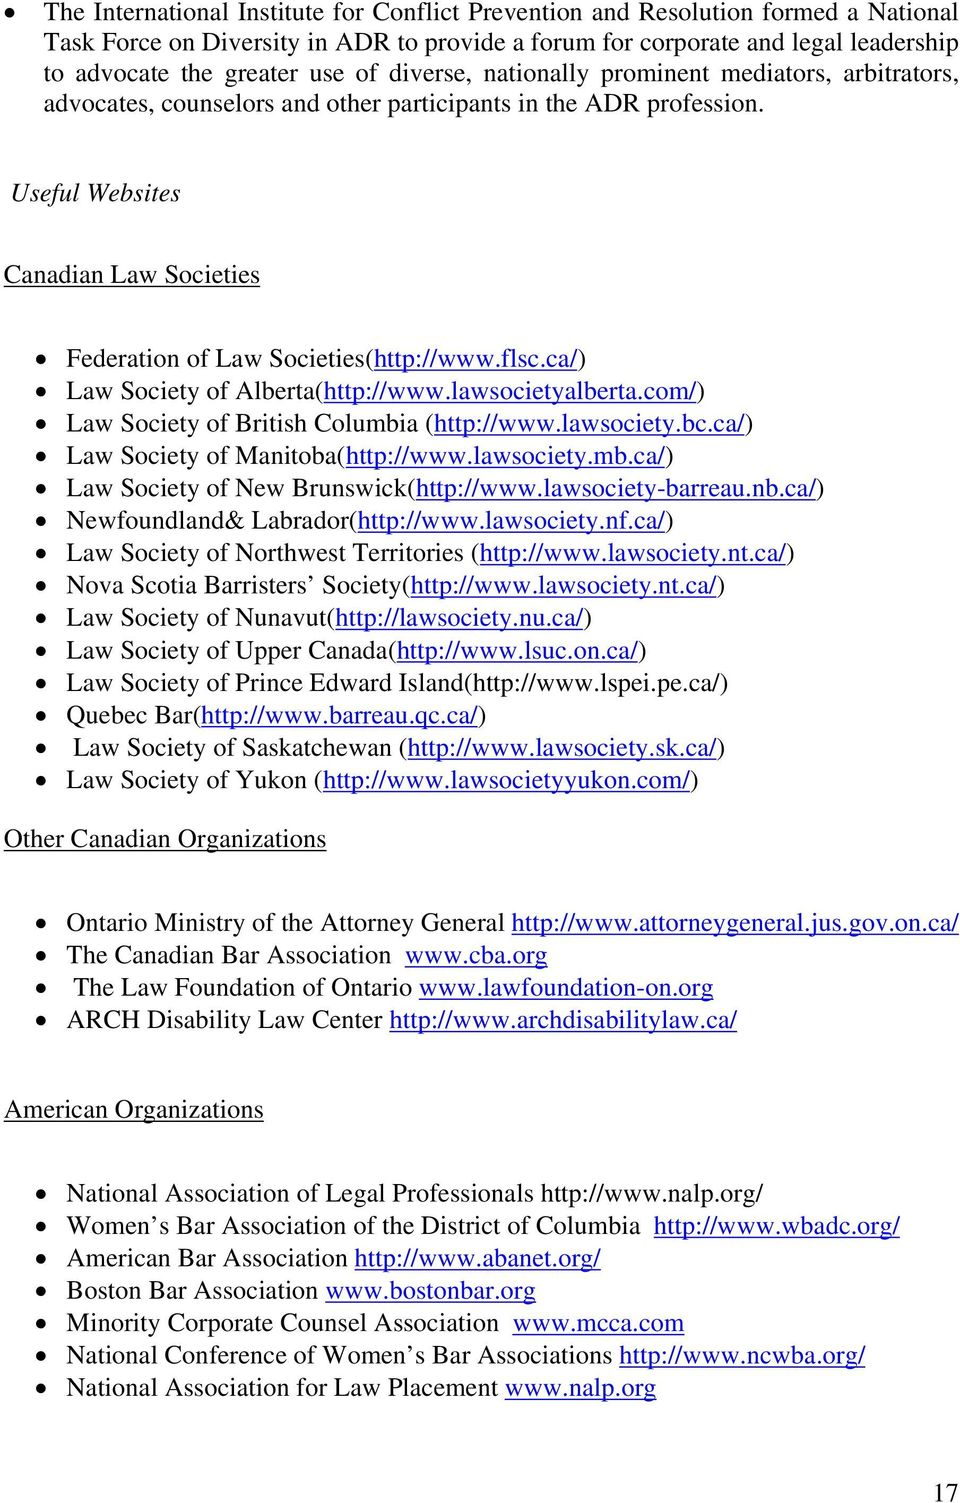 Useful Websites Canadian Law Societies Federation of Law Societies(http://www.flsc.ca/) Law Society of Alberta(http://www.lawsocietyalberta.com/) Law Society of British Columbia (http://www.